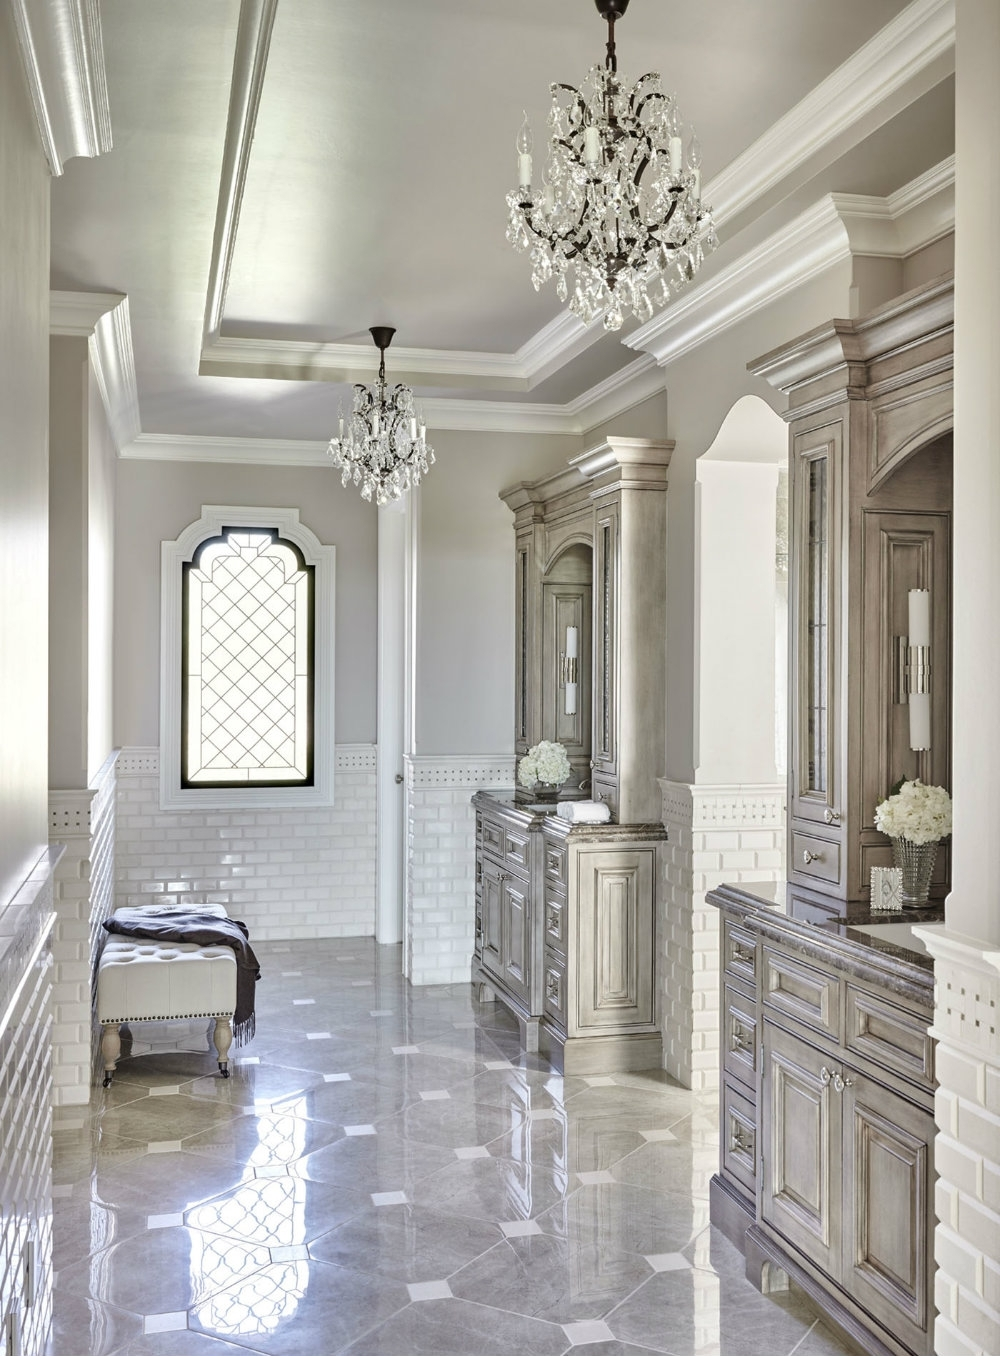 Bathroom Chandeliers With Preferred Astonishing Bathroom Chandeliers For A Luxury Bathroom – Modern (View 5 of 20)